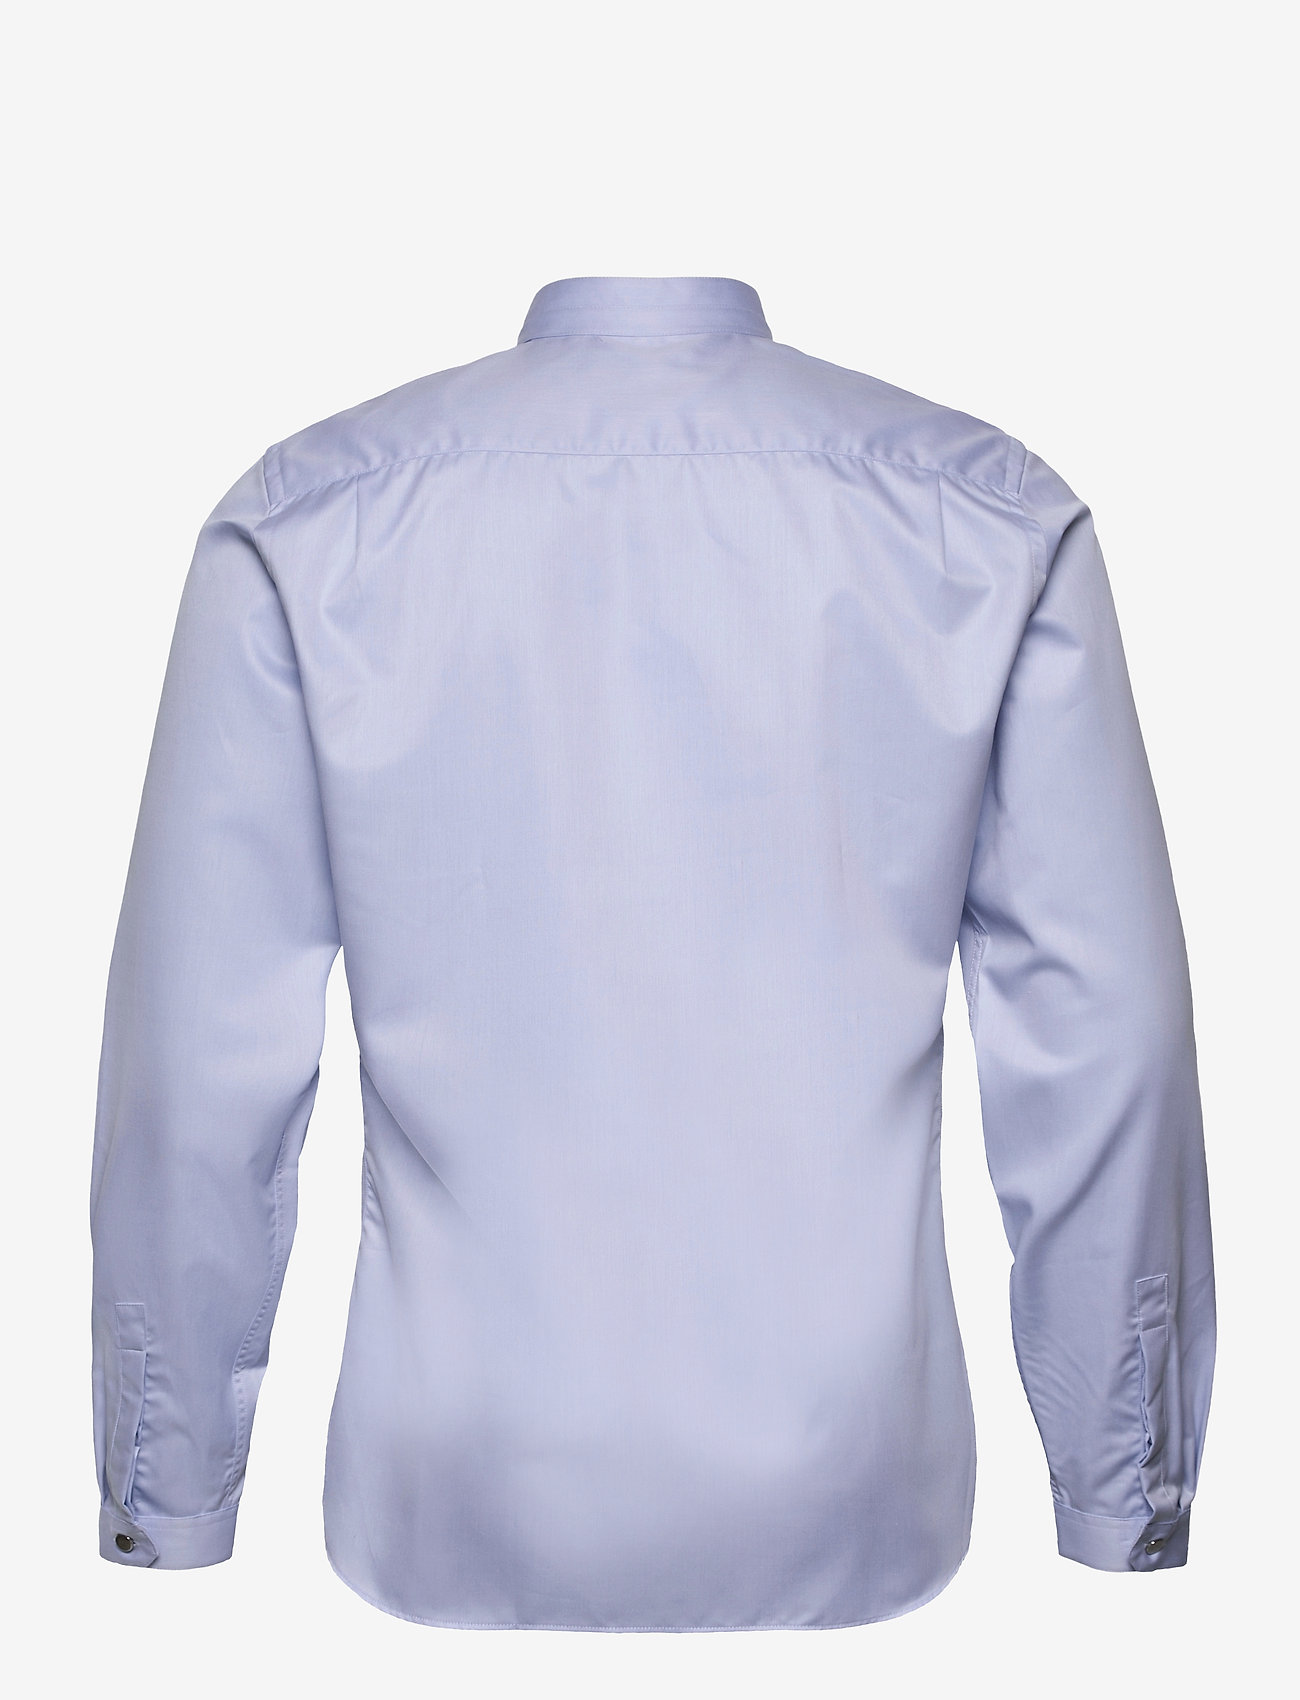 The Kooples CHEMISE - Skjorter LIGHT BLUE - Menn Klær